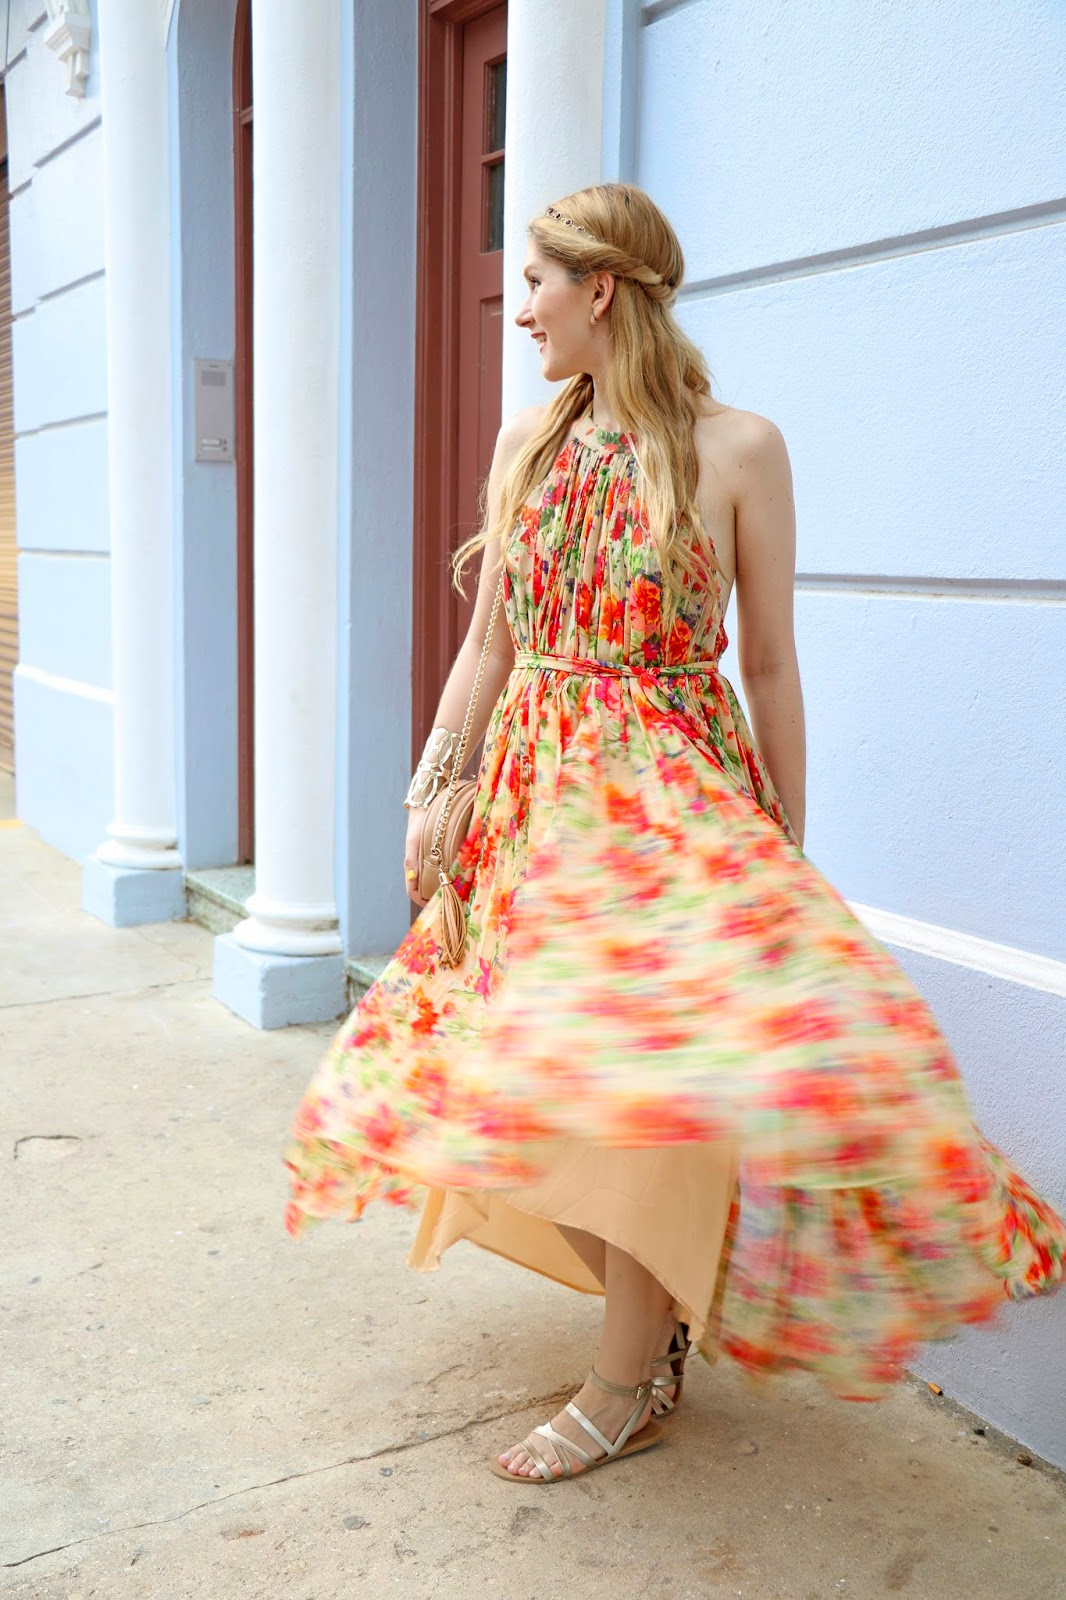 Pair a breezy floral maxi dress with comfy sandals for a cute Brunch outfit!